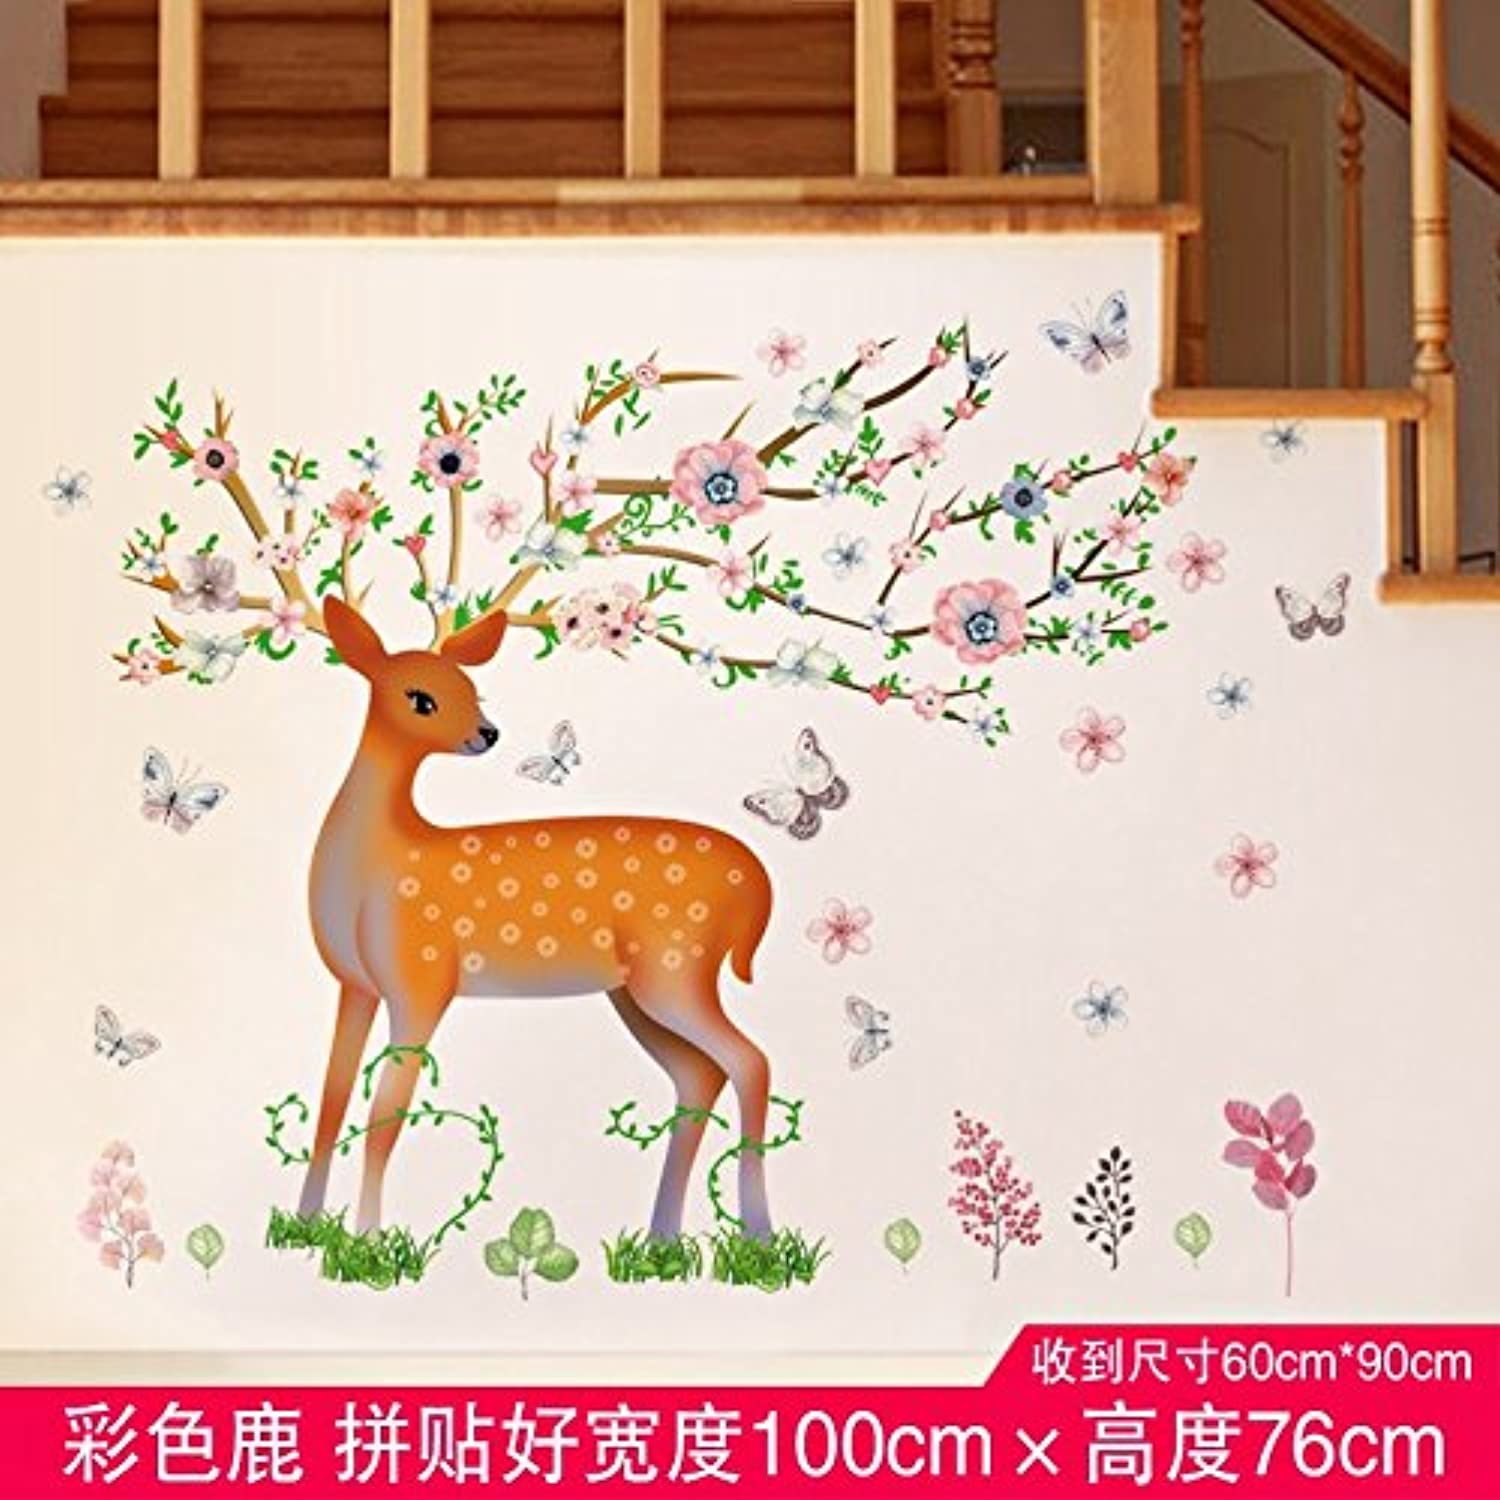 Znzbzt Bedroom Wall Art Sticker Room Interior Wall Painting self Adhesive, color, King